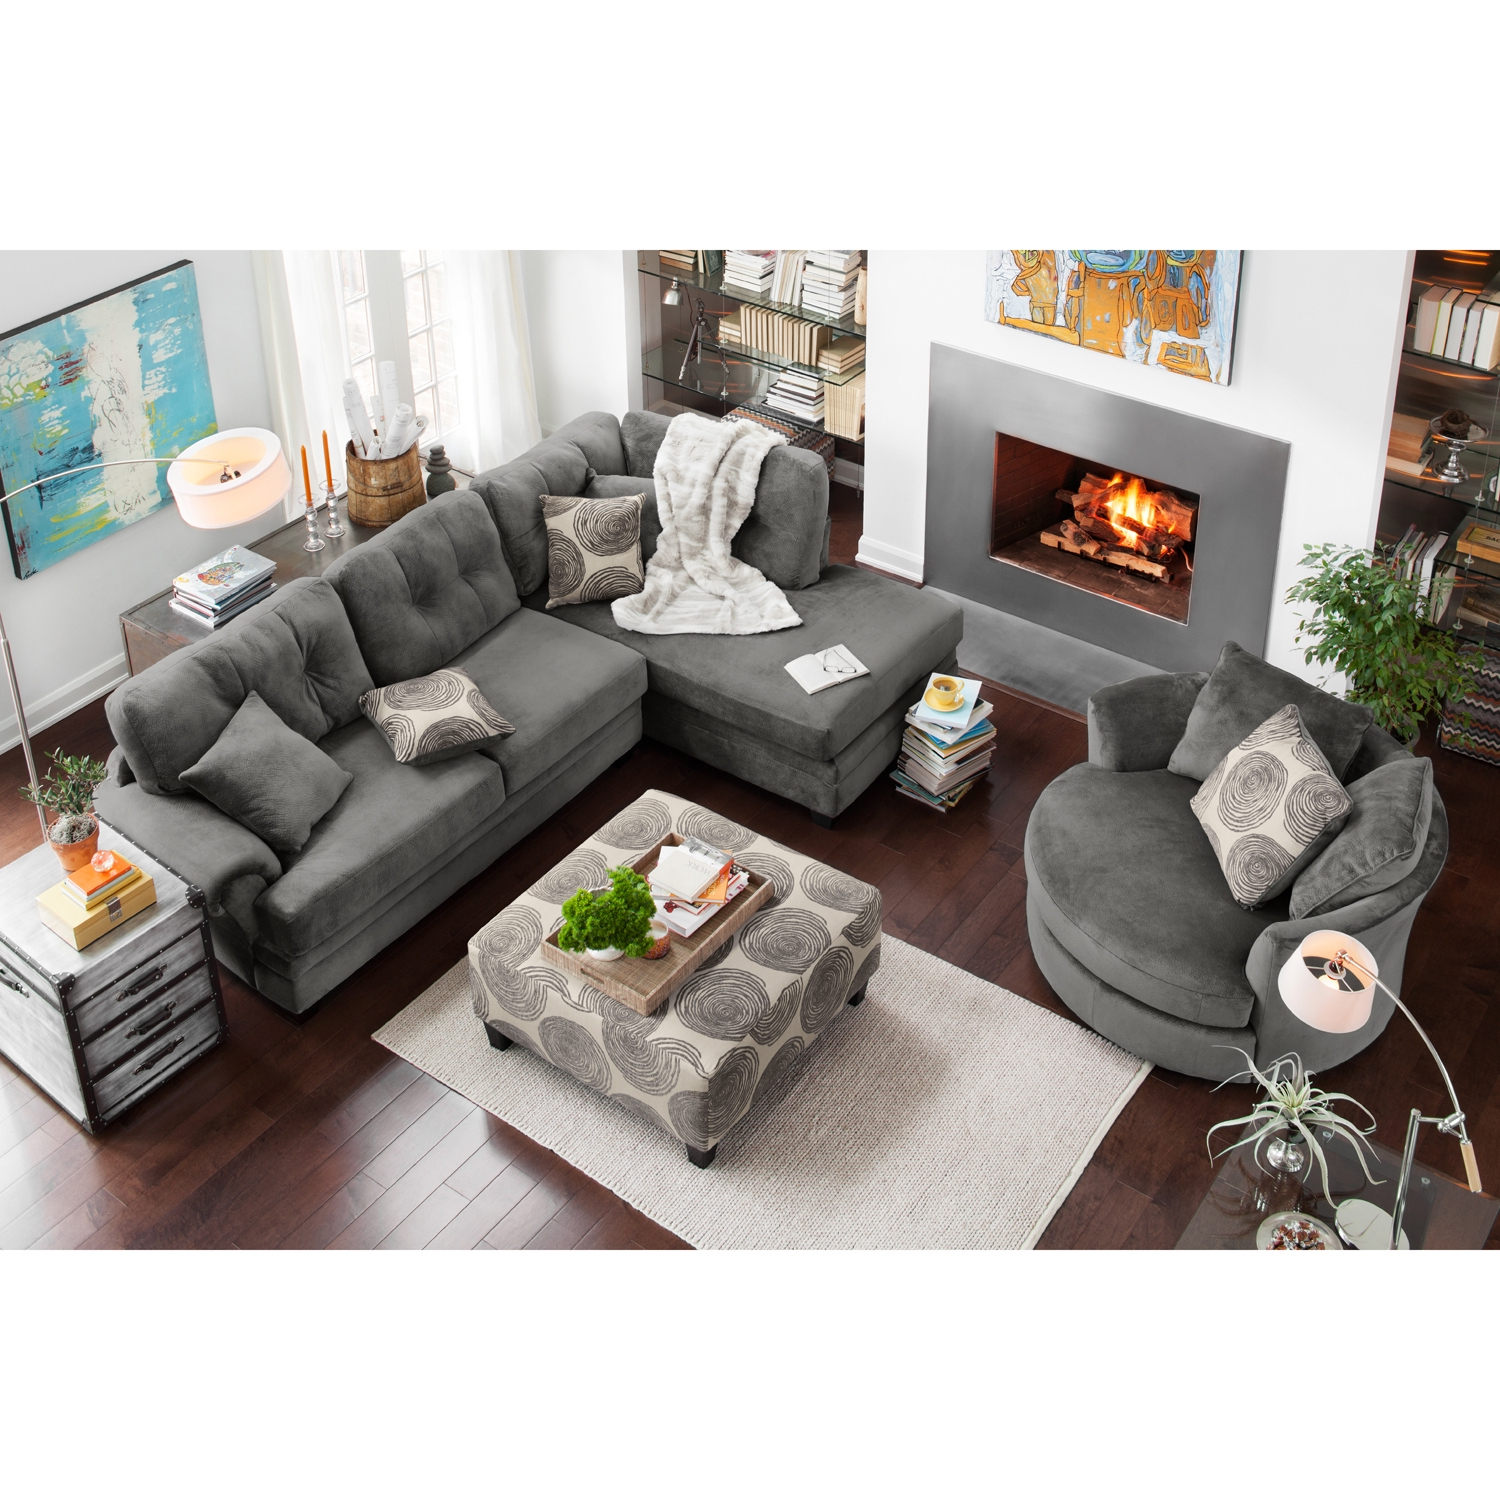 Preferred Tenny Dark Grey 2 Piece Right Facing Chaise Sectionals With 2 Headrest Pertaining To Left Facing Sectional Sofa Leather Arm Truscotti Stock Rooms Gray (Gallery 16 of 20)